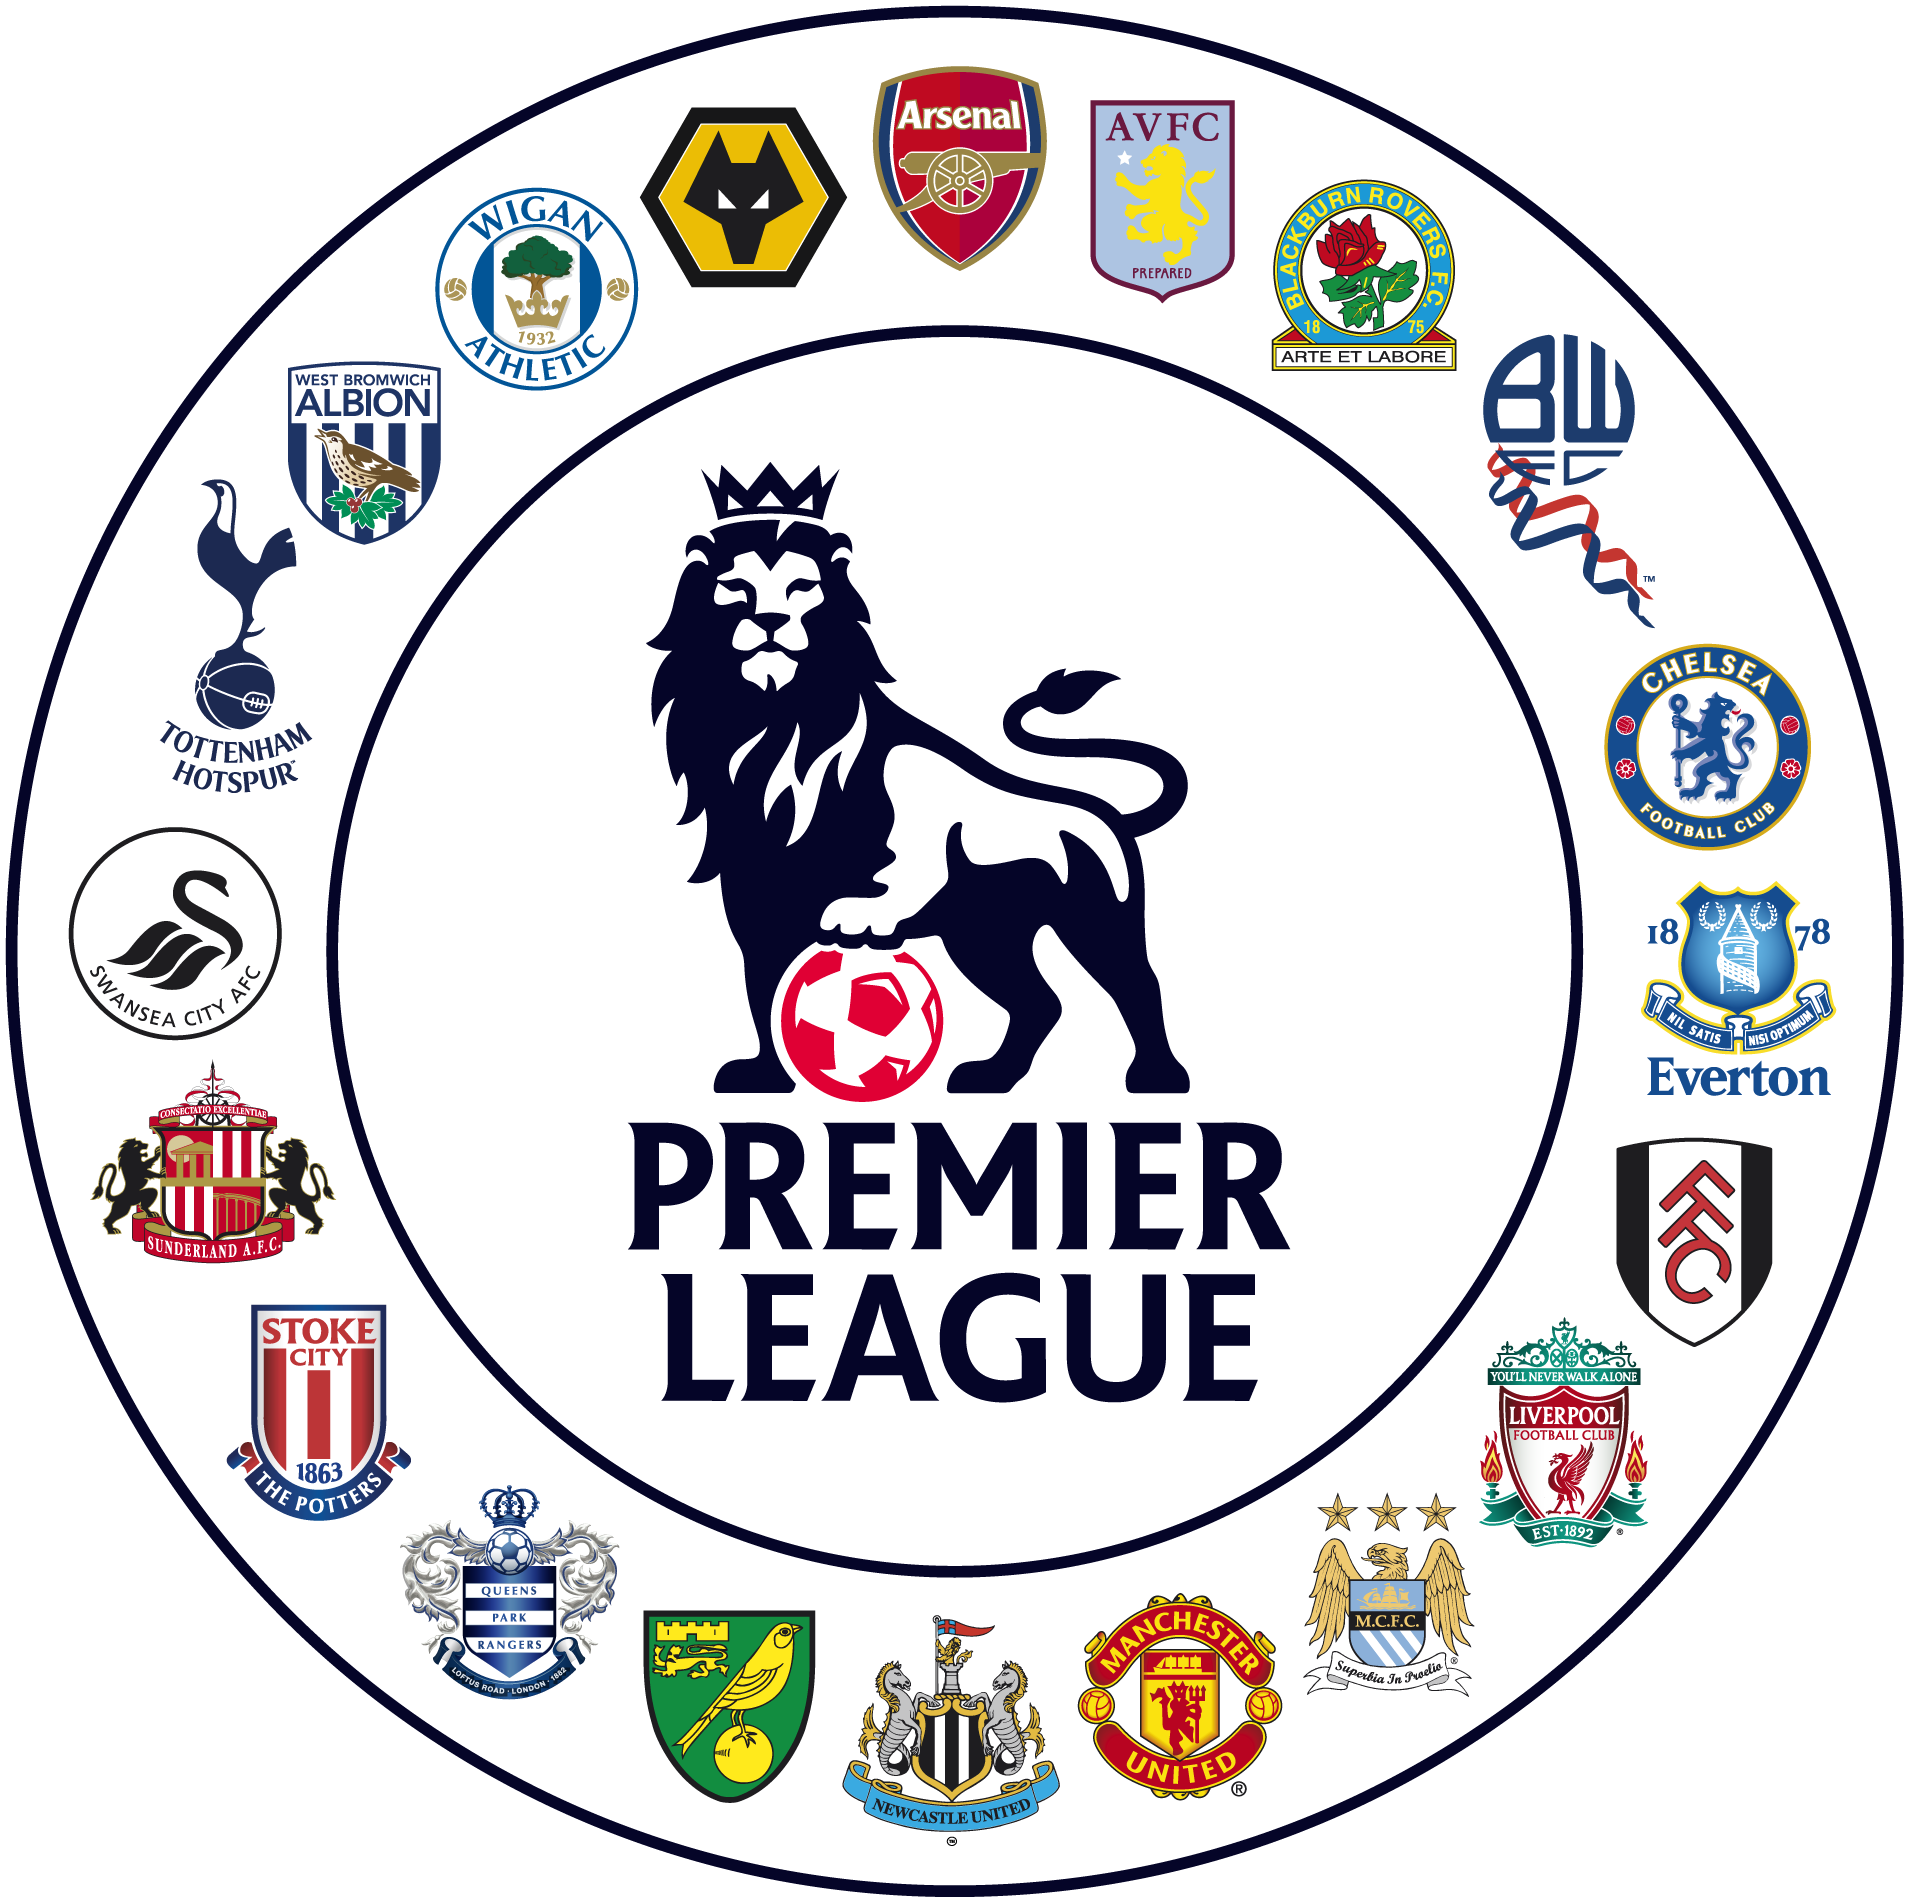 come vedere in Streaming 23ma giornata partite premier league 2015